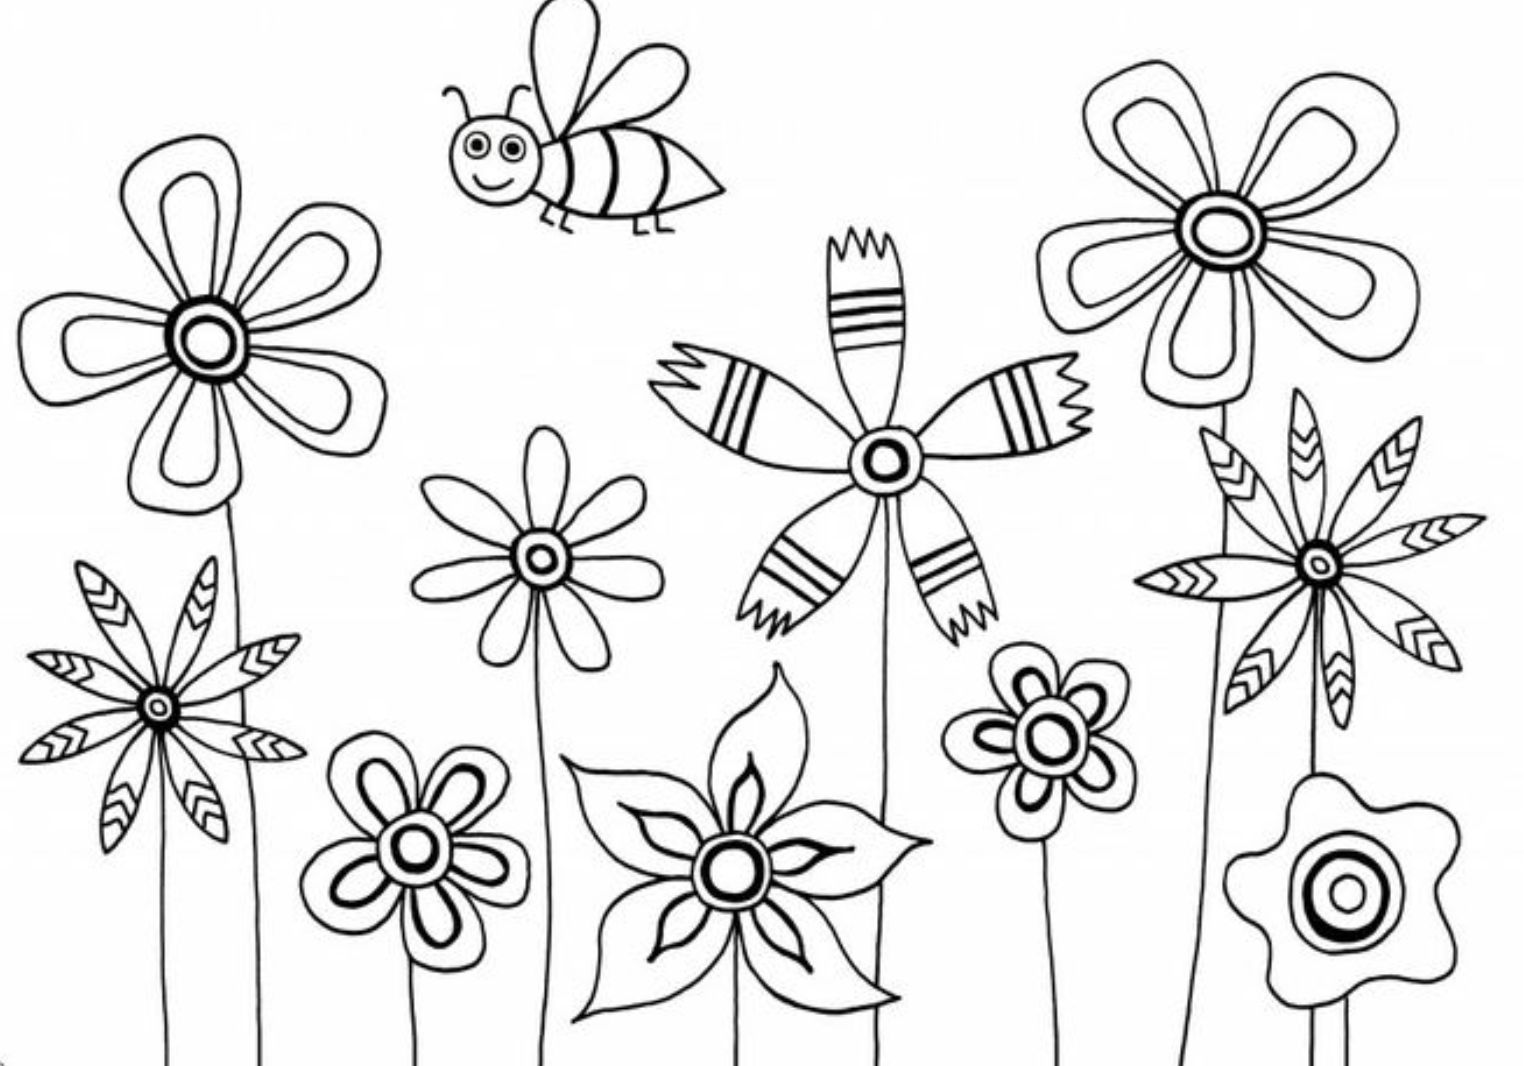 Flower Coloring Pages For Kids Printable Flowers To Color Inside